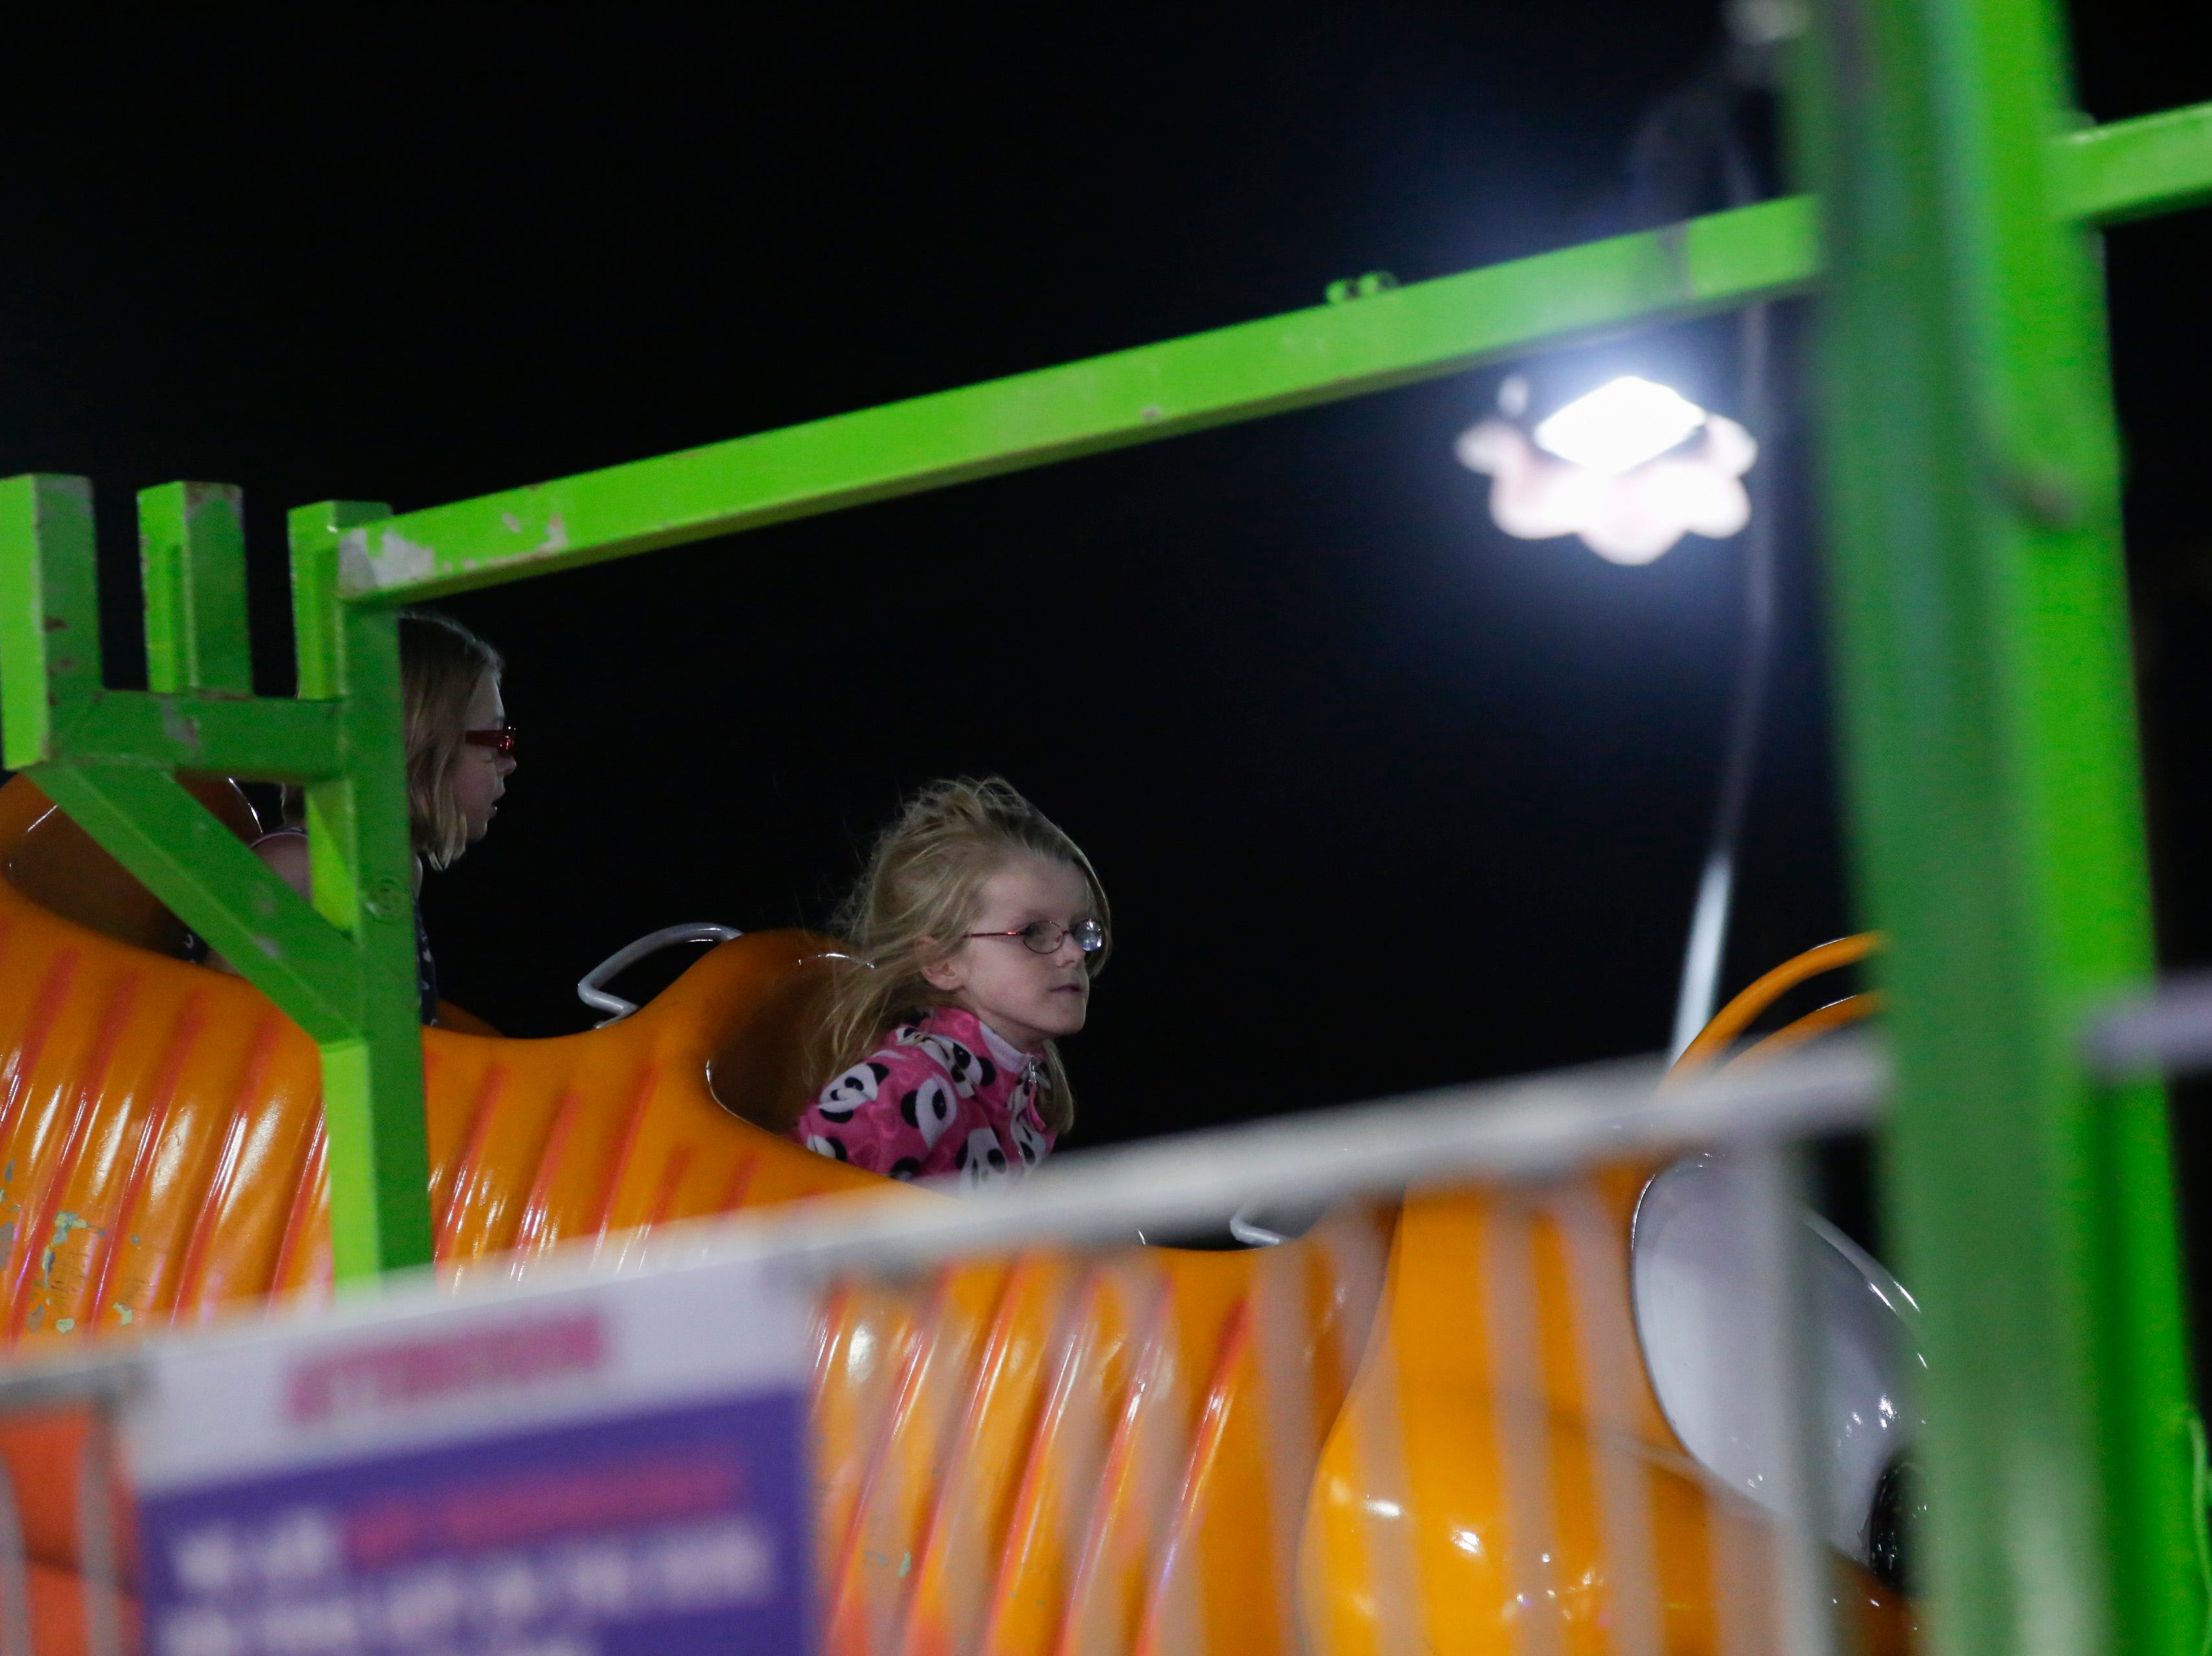 Kadence Hall, 9, rides the children's roller coaster at the Central Wisconsin State Fair in Marshfield Wednesday, August 22, 2018.